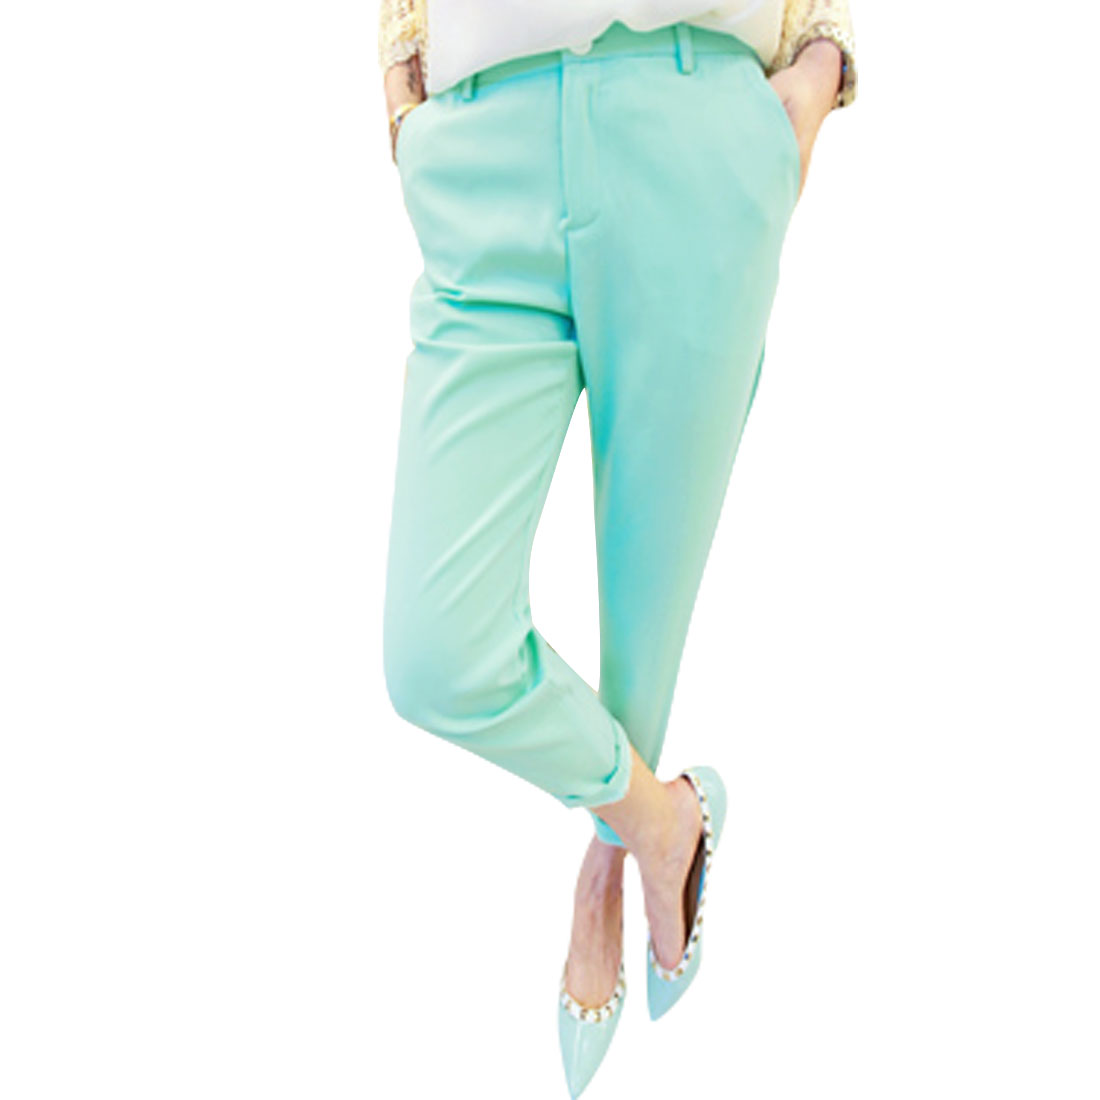 Woman New Fashion Mint Green Natural Waist Zipper Fly Full Length Pants S